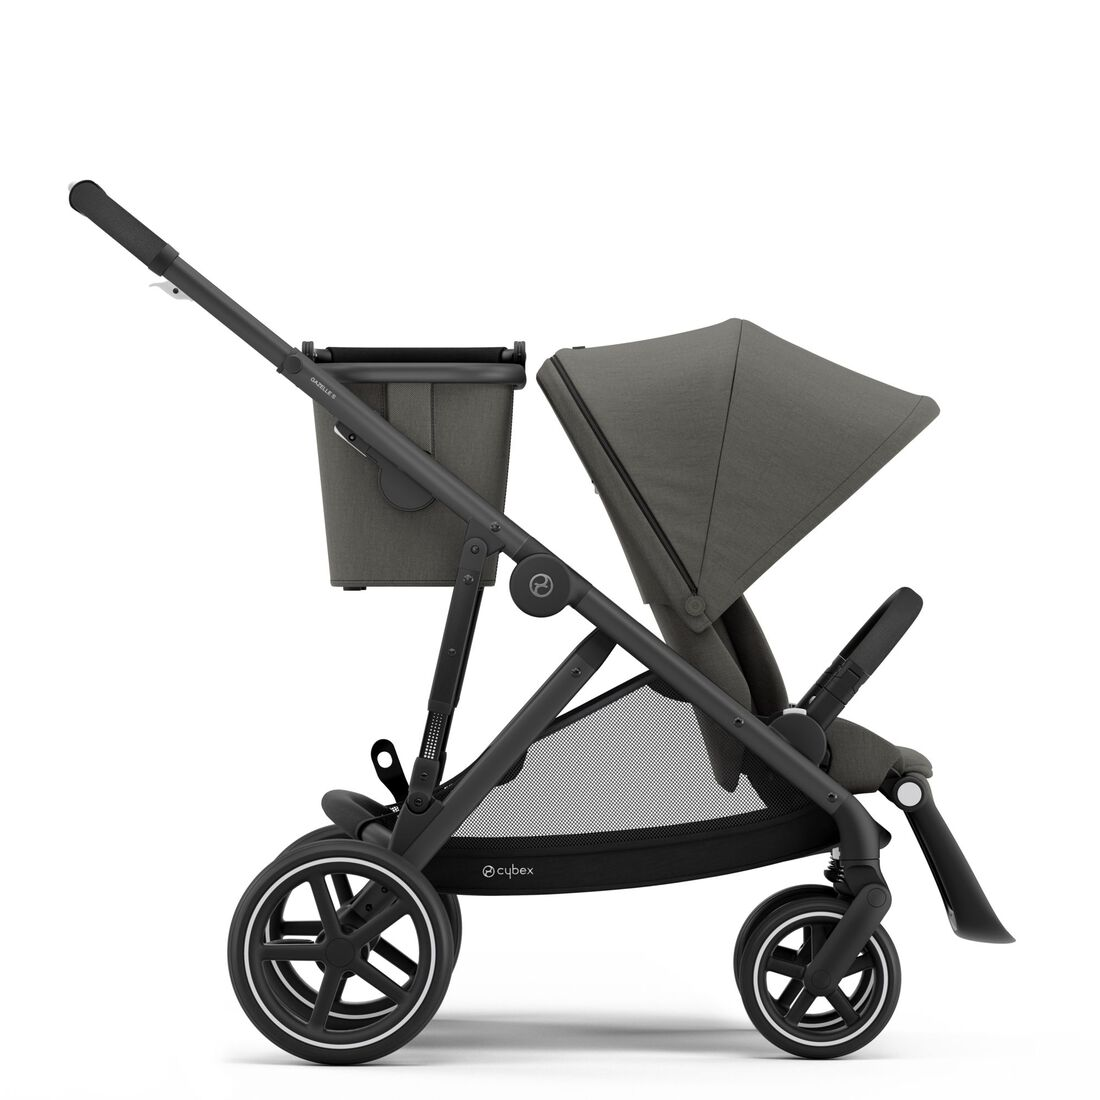 CYBEX Gazelle S - Soho Grey (Schwarzer Rahmen) in Soho Grey (Black Frame) large Bild 1